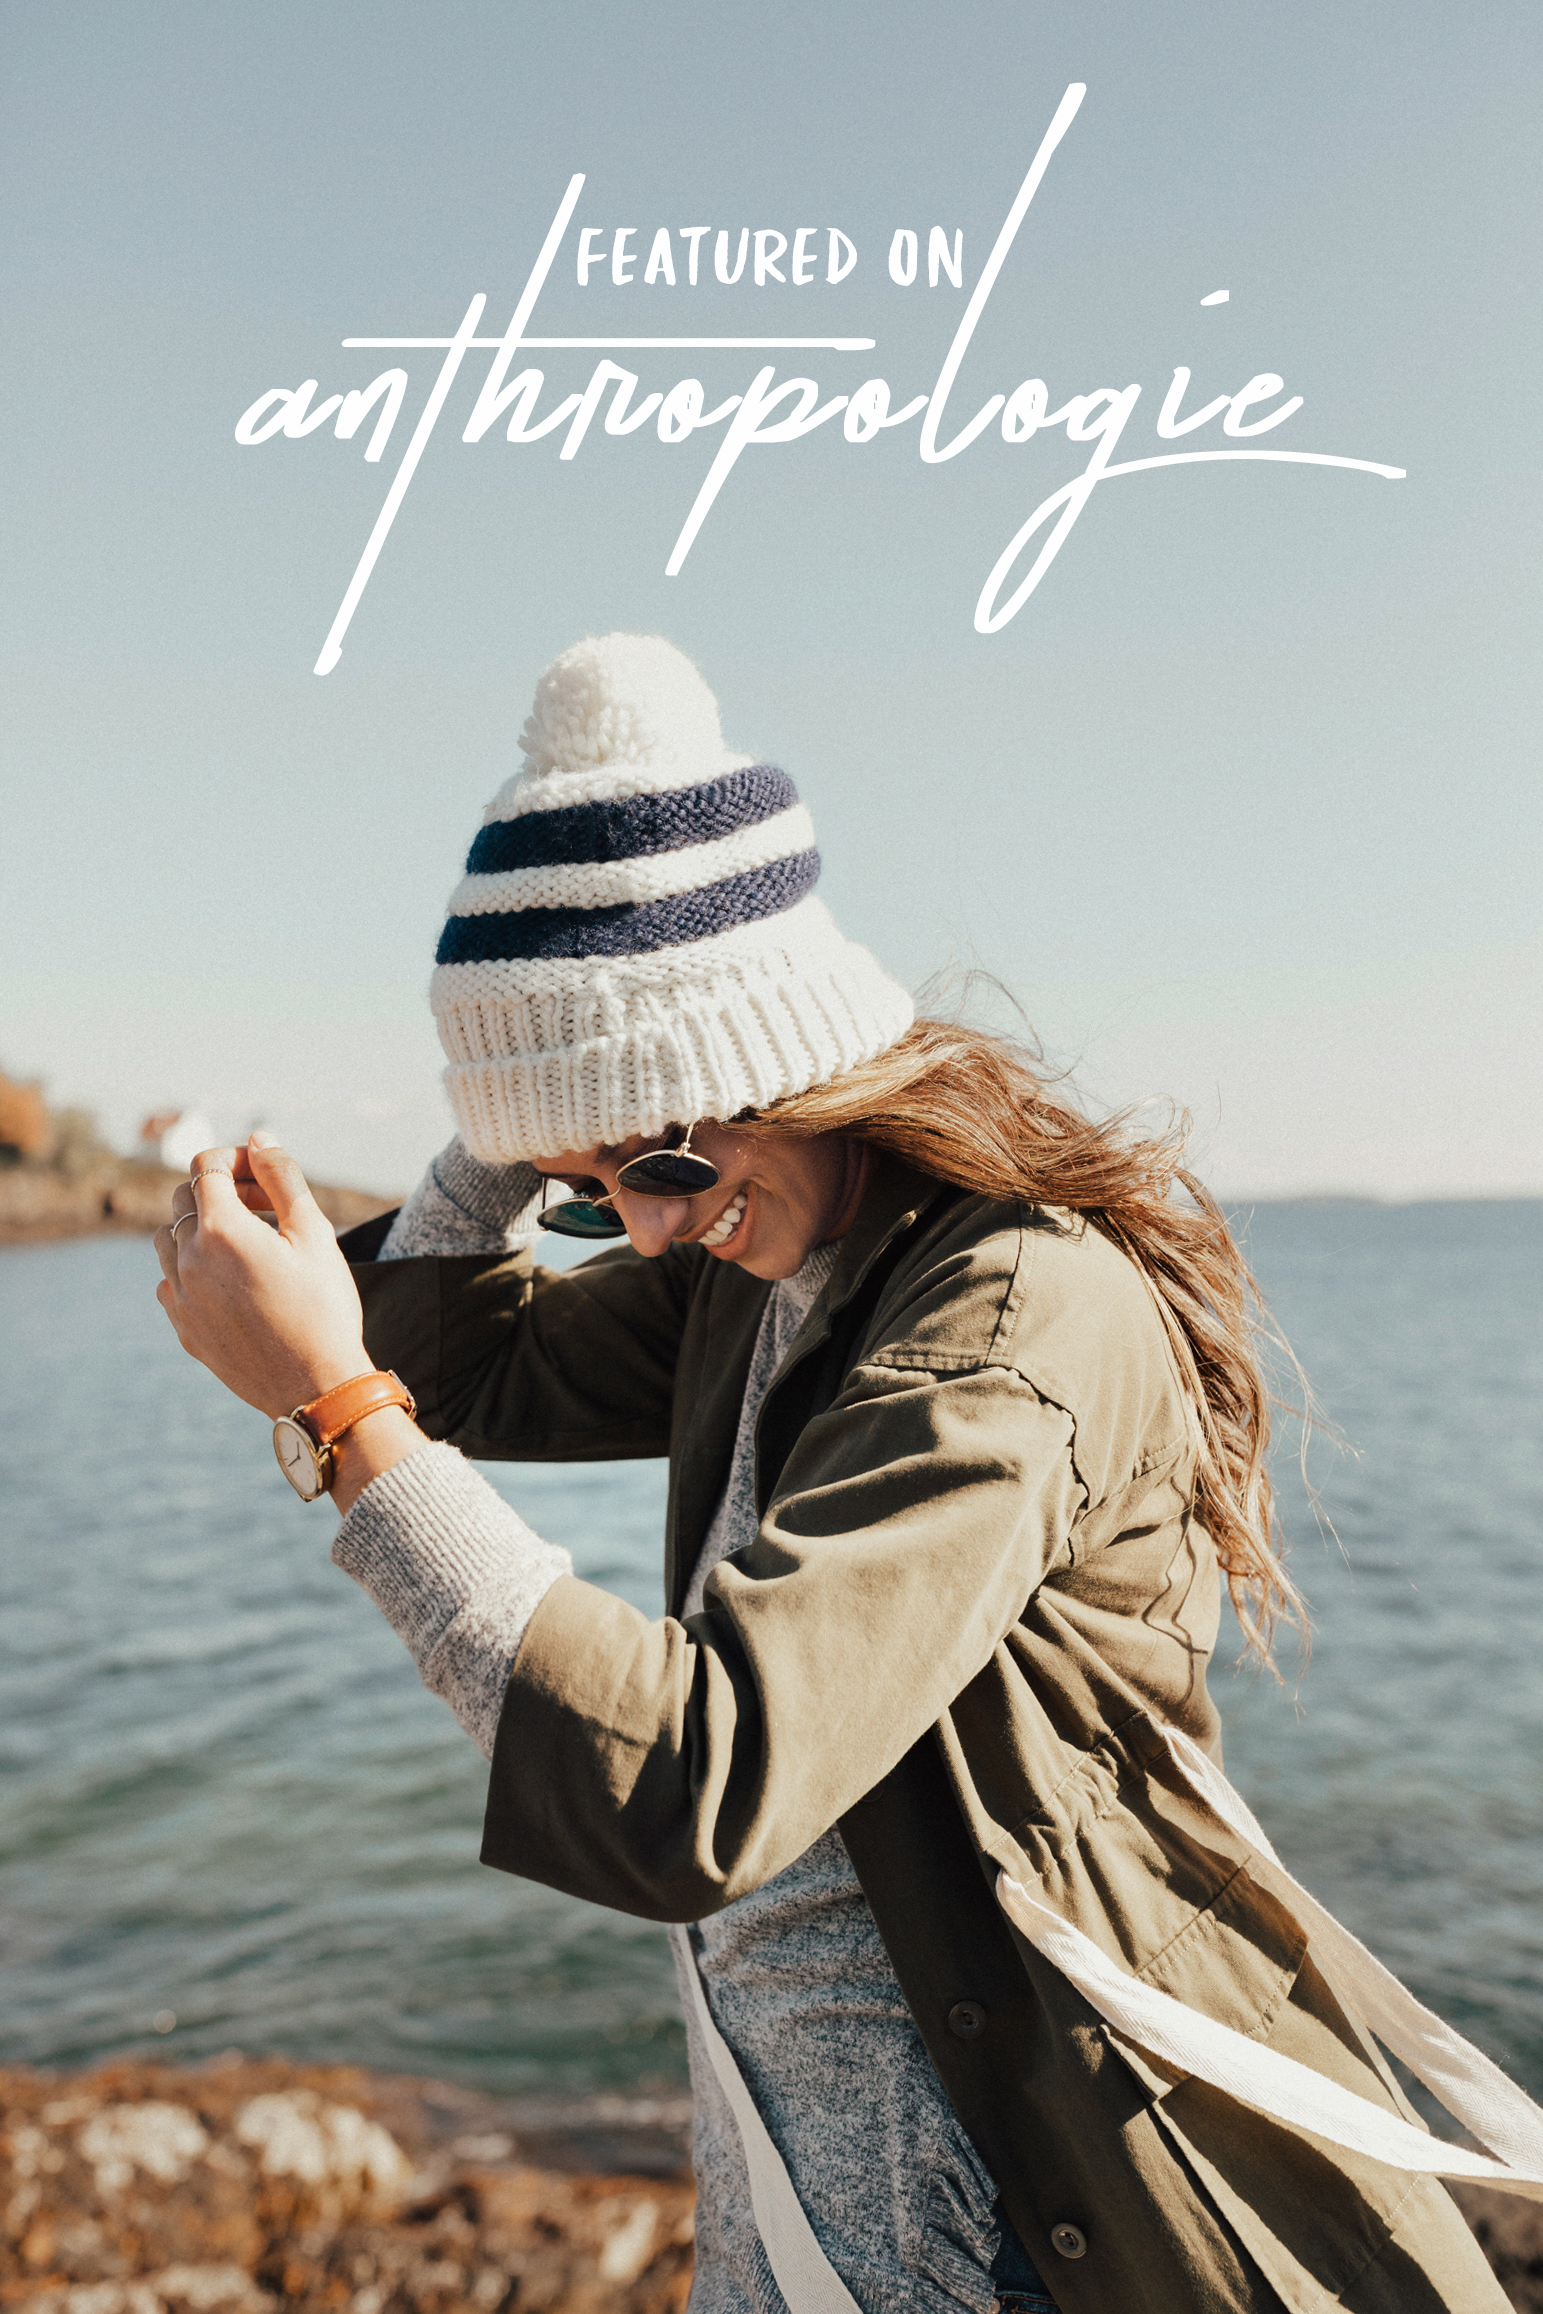 Featured On Anthropologie | Shades of Fall | Fall Fashion feature with Anthropologie | Fall Trends with Travel Blogger Elana Jadallah | Best Looks of Fall with Anthropologie | Exploring Camden Maine | Travel Diary Camden Maine via @elanaloo + elanaloo.com